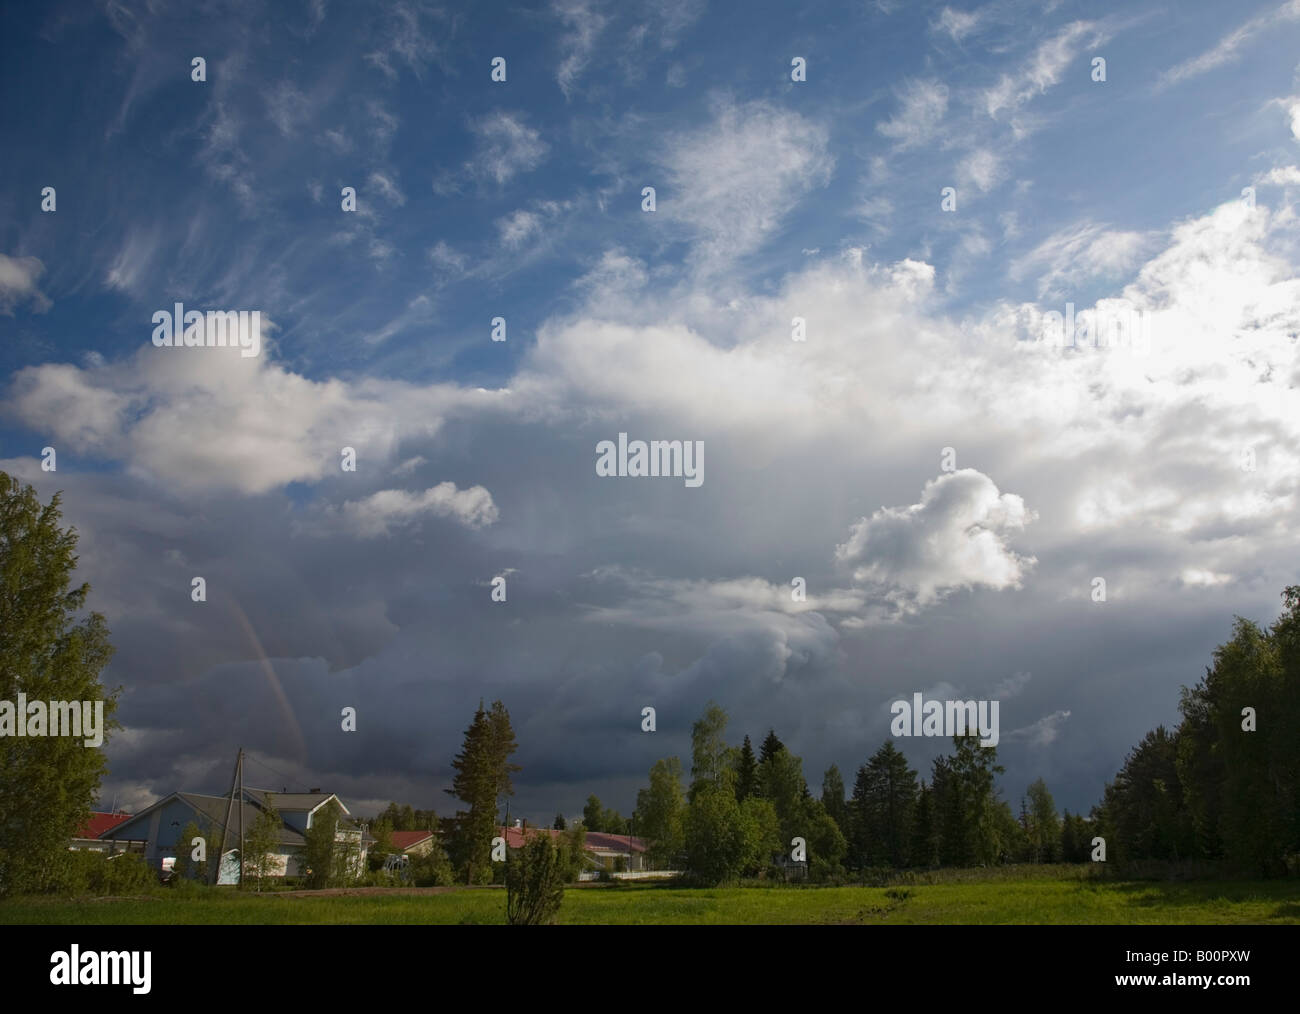 Thunderstorm clouds rising over a residential area , Finland - Stock Image